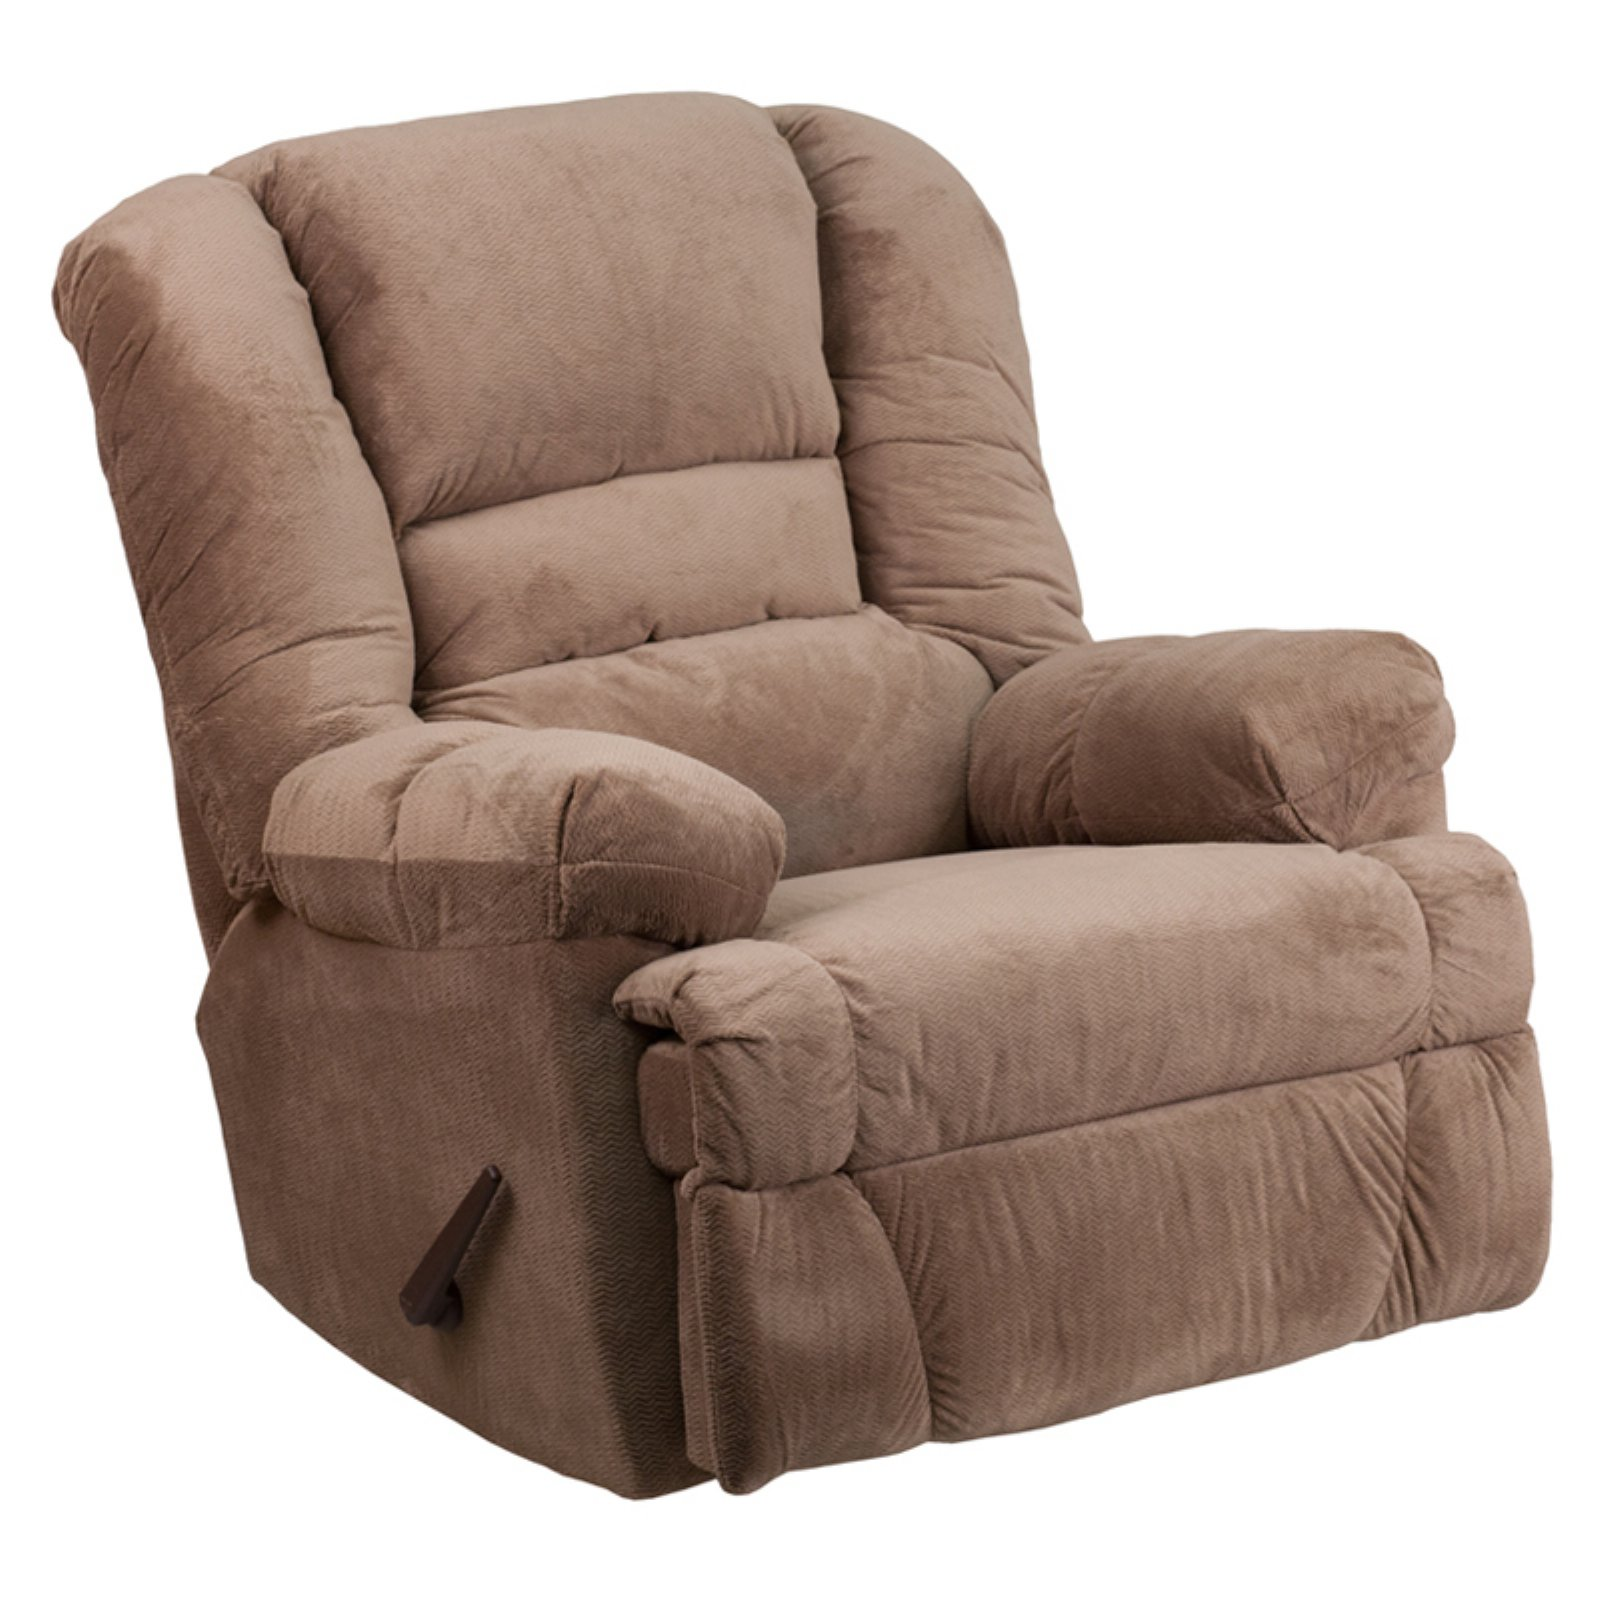 Flash Furniture Contemporary Dynasty Microfiber Rocker Recliner, Multiple Colors